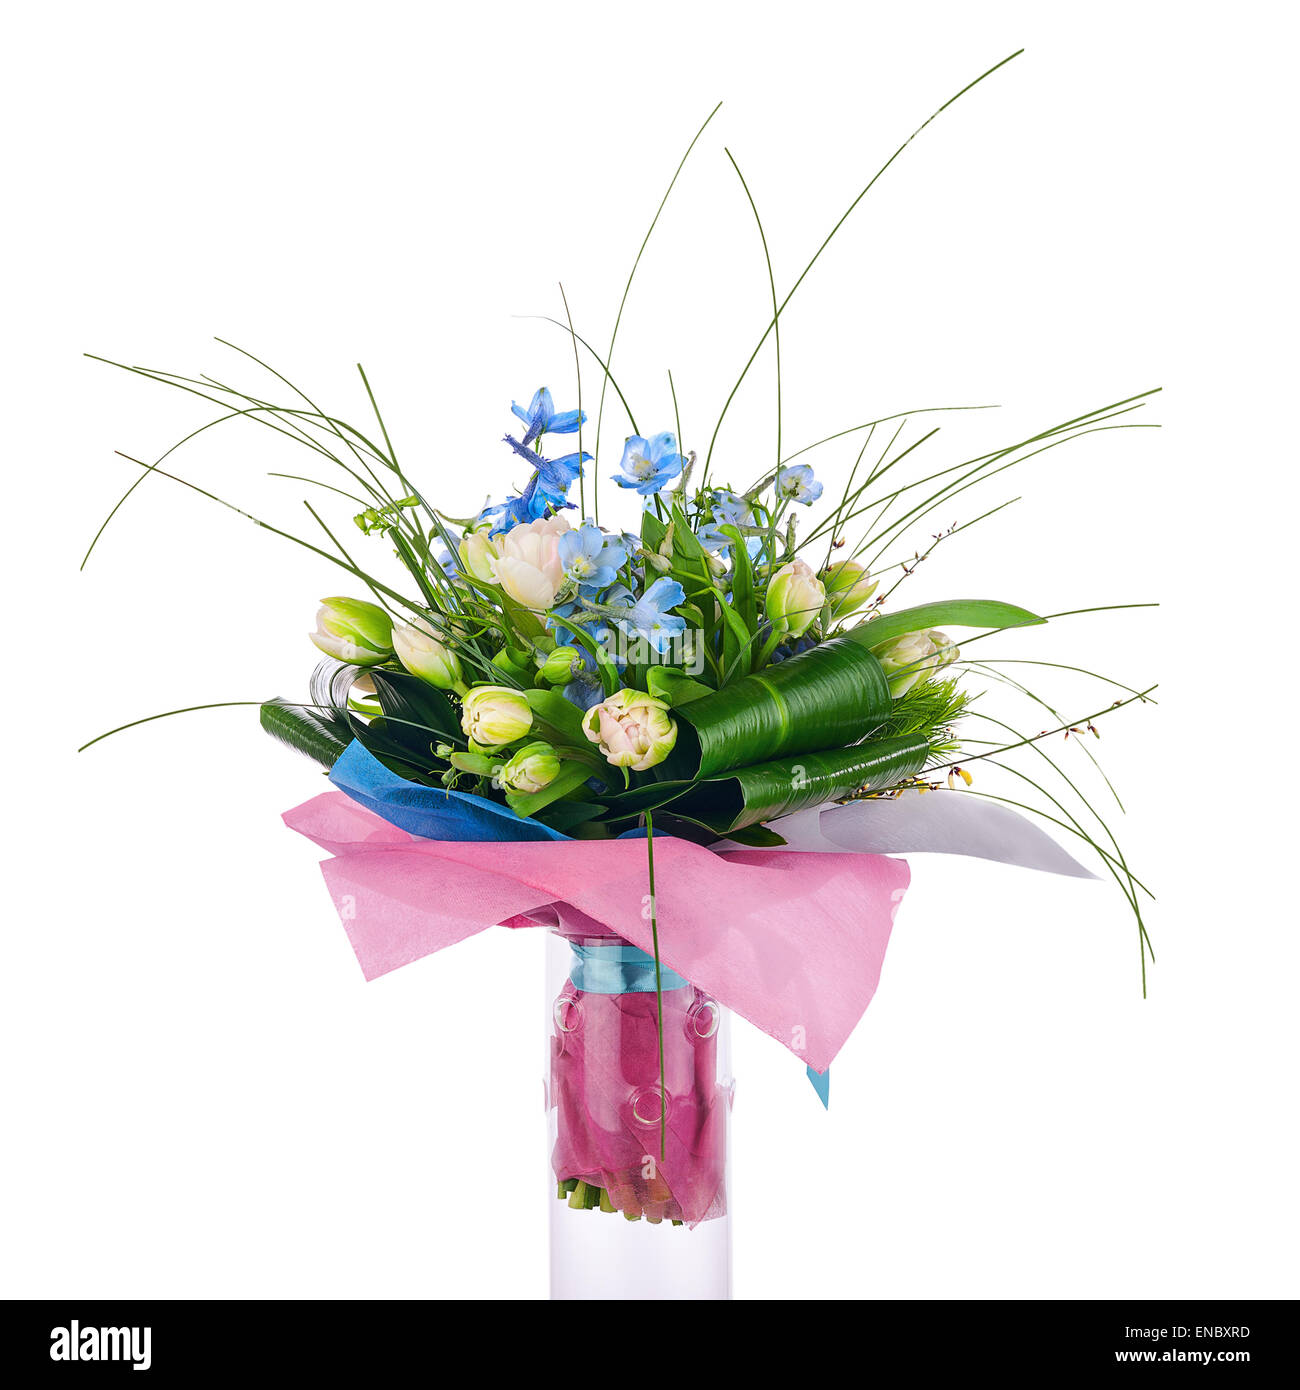 Flower Bouquet From Tulips Iris And Other Flowers Arrangement Stock Photo Alamy